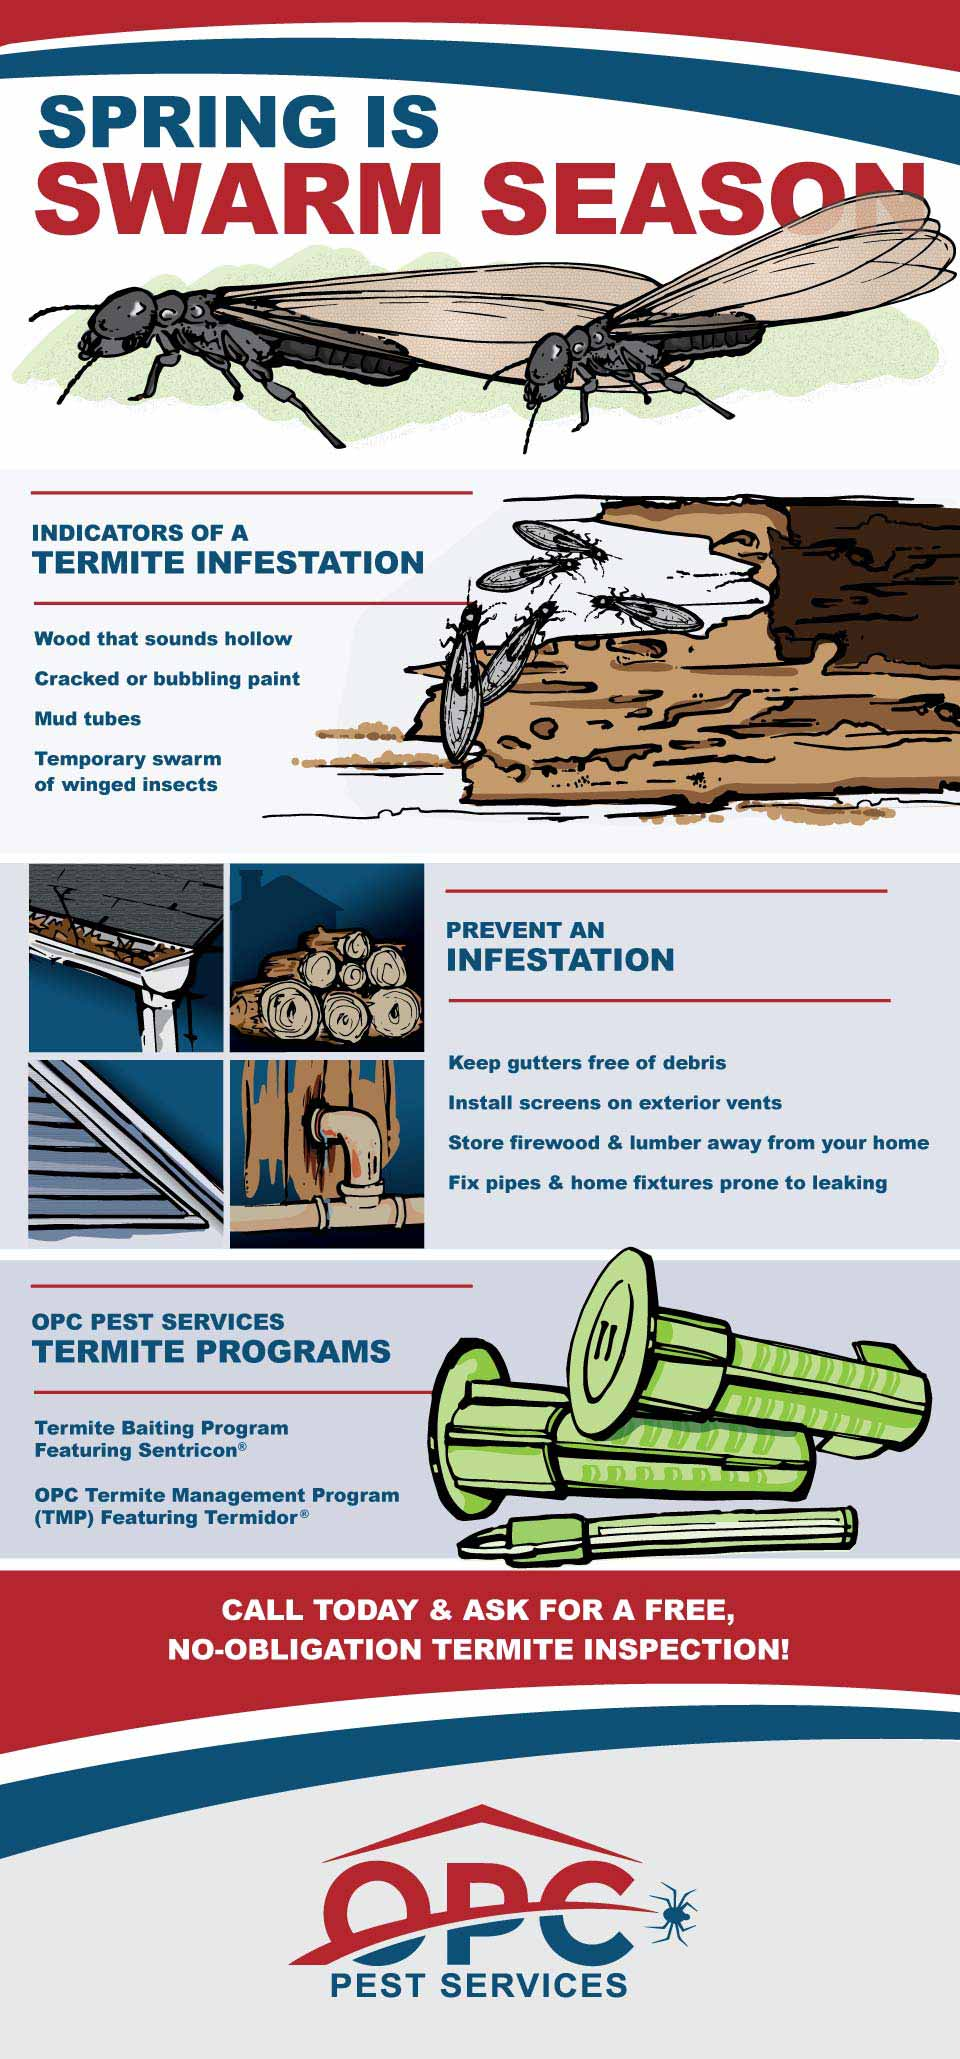 OPC Pest Services - Termite Swarms Graphic